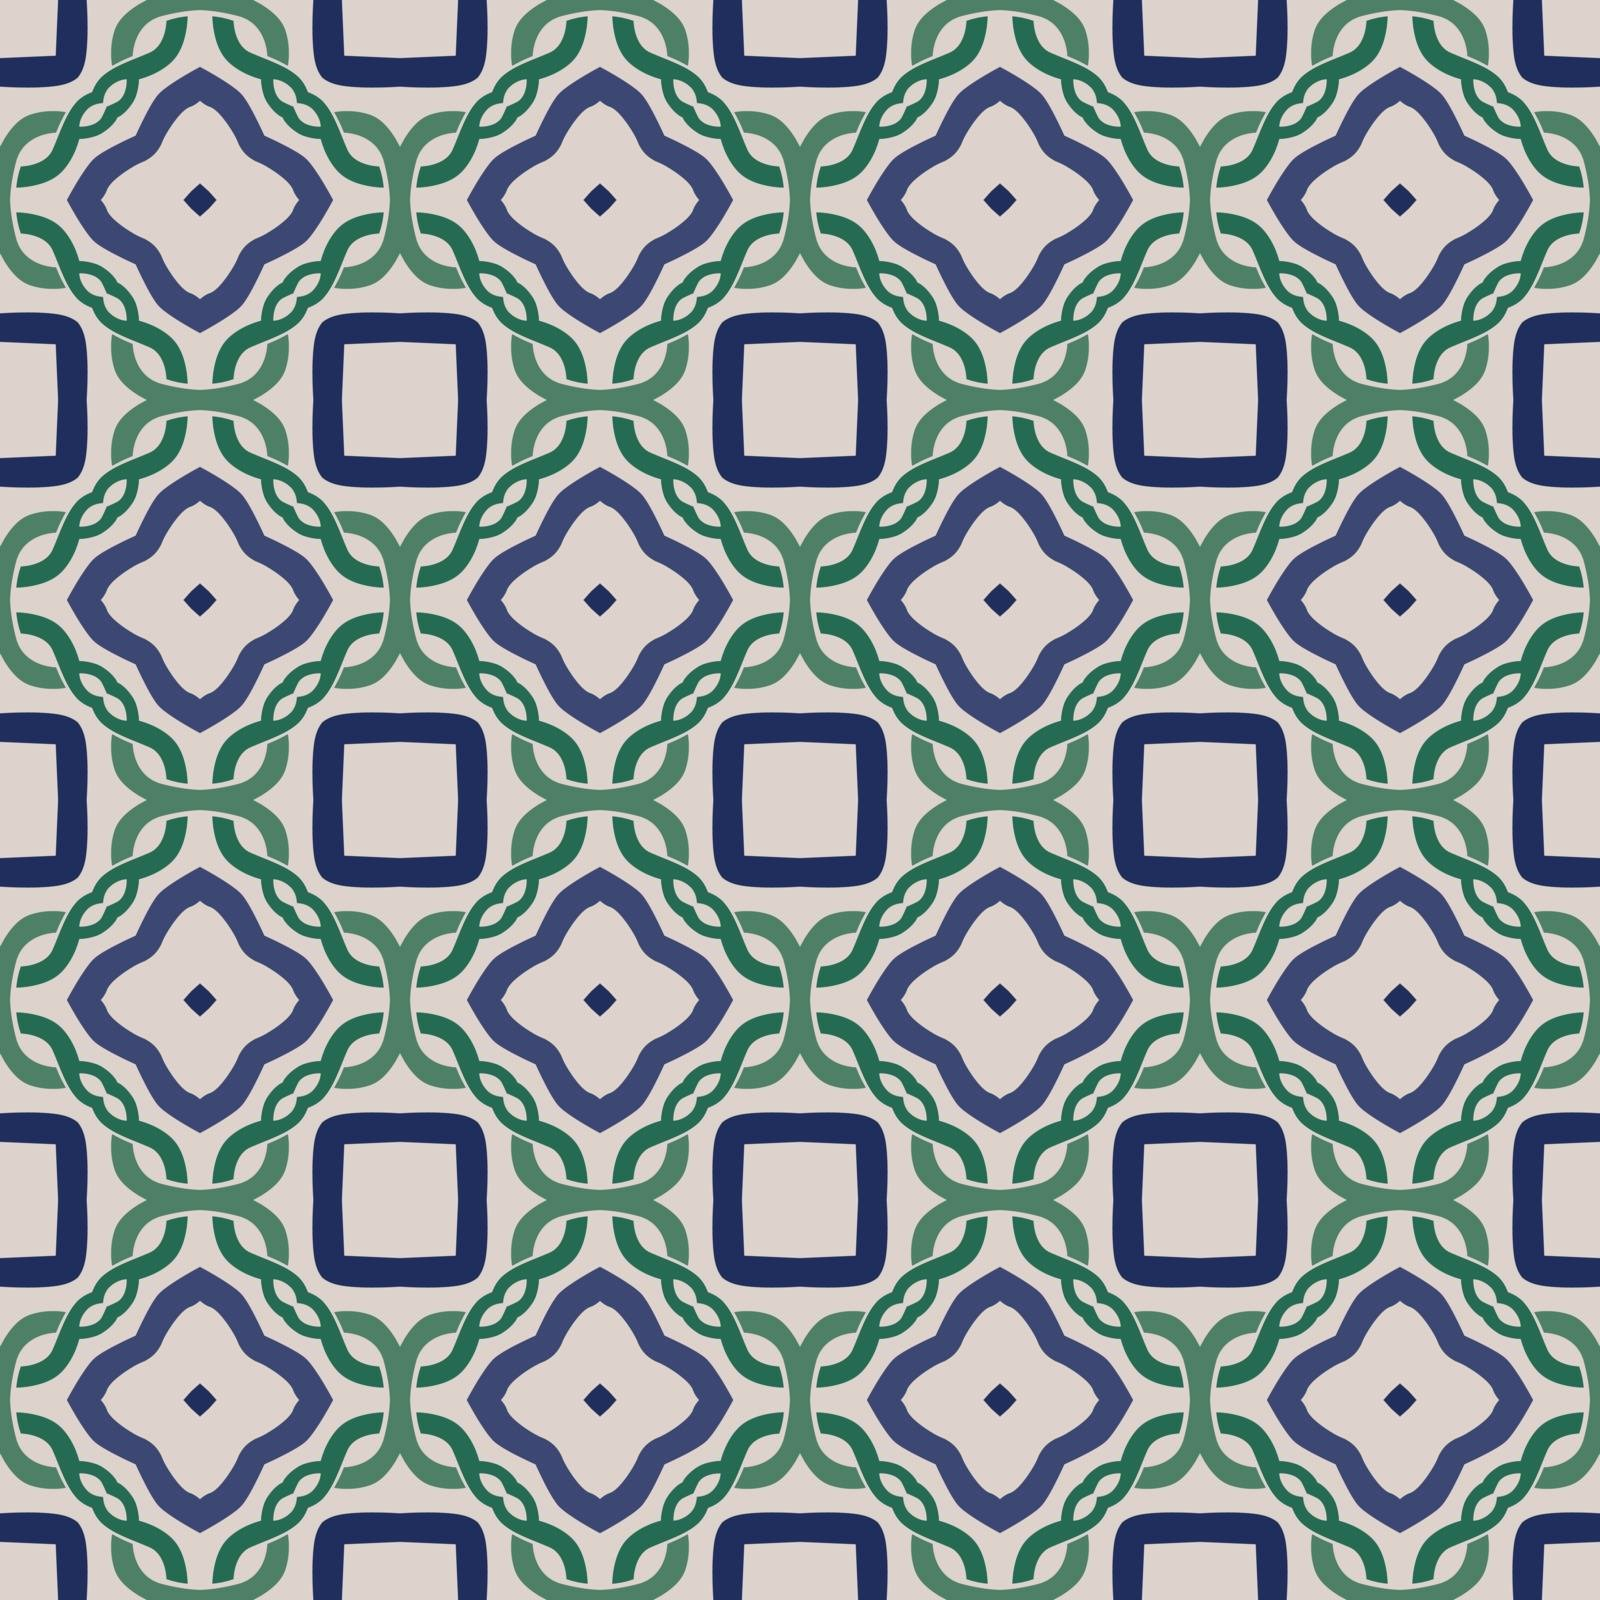 Seamless illustrated pattern made of abstract elements in beige, blue and green